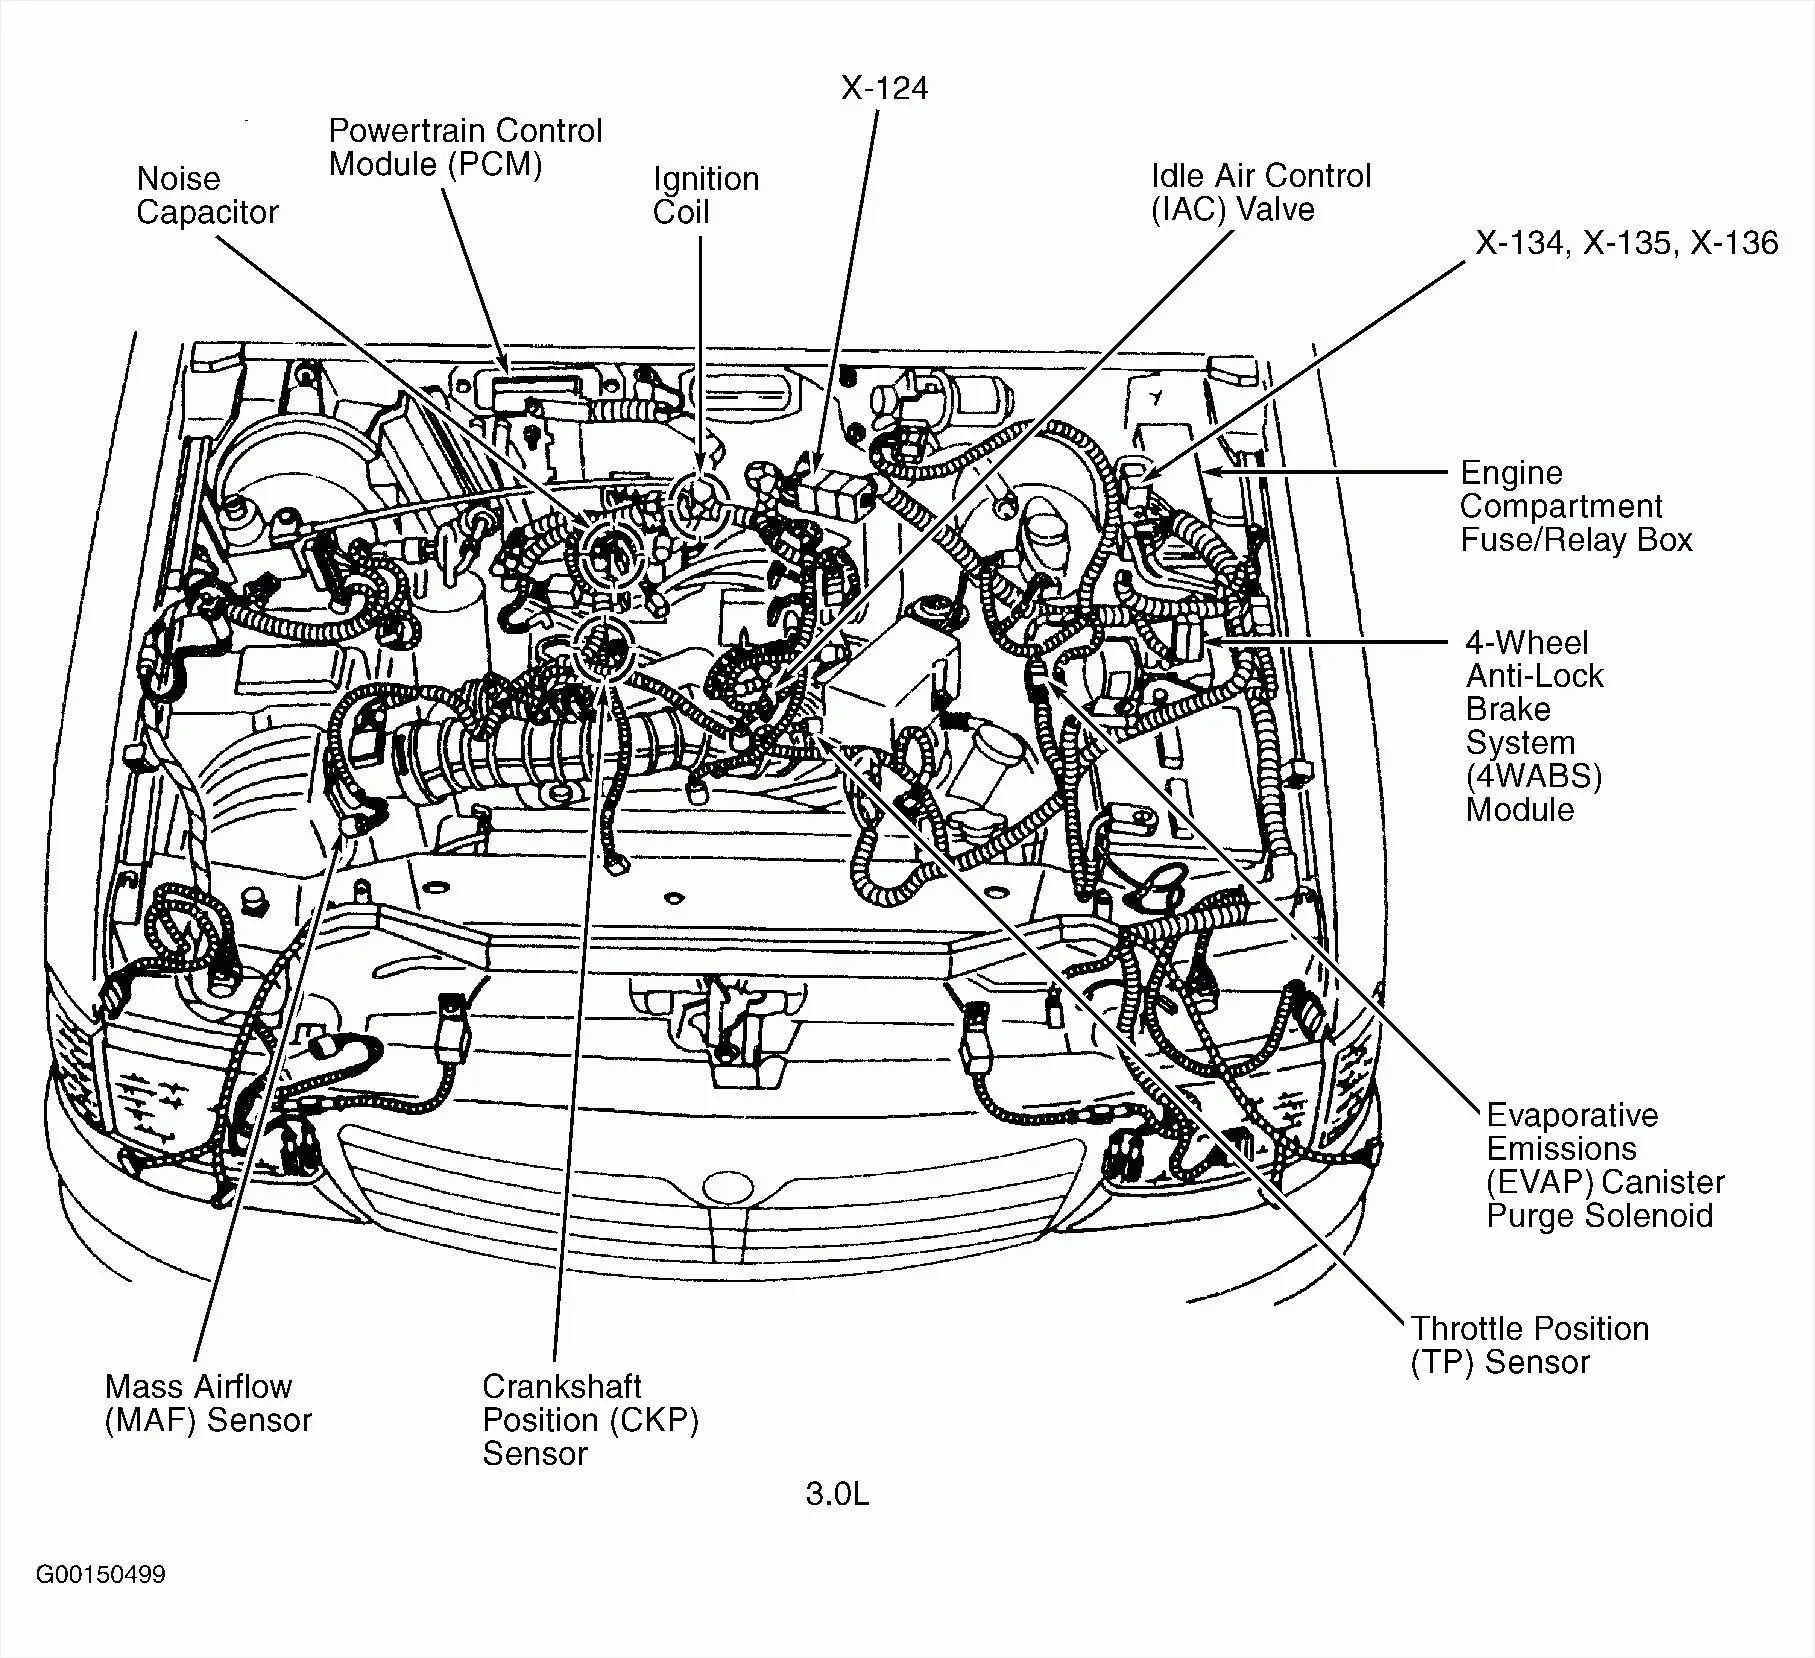 hight resolution of 2011 vw jetta se engine diagram wiring diagram used 2006 volkswagen jetta 2 5 fuse box diagram 2006 jetta 2 5 fuse diagram